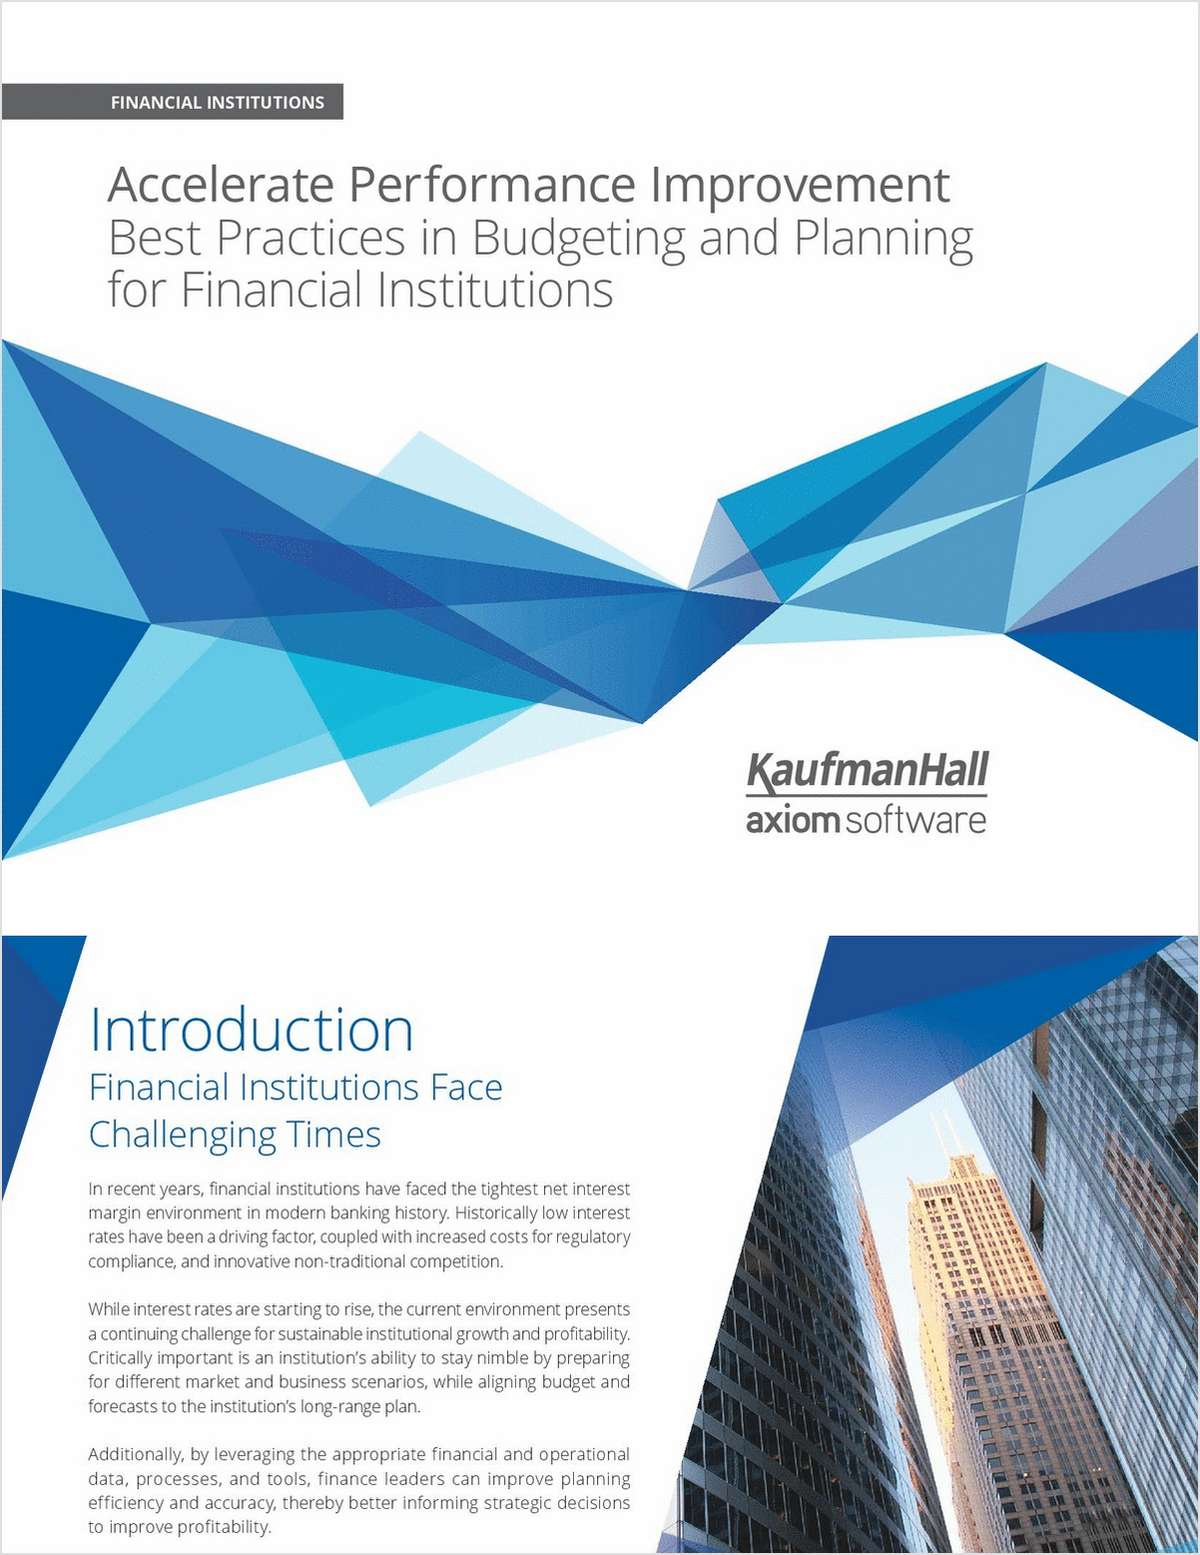 Accelerate Performance Improvement: Best Practices in Budgeting and Planning for Credit Unions